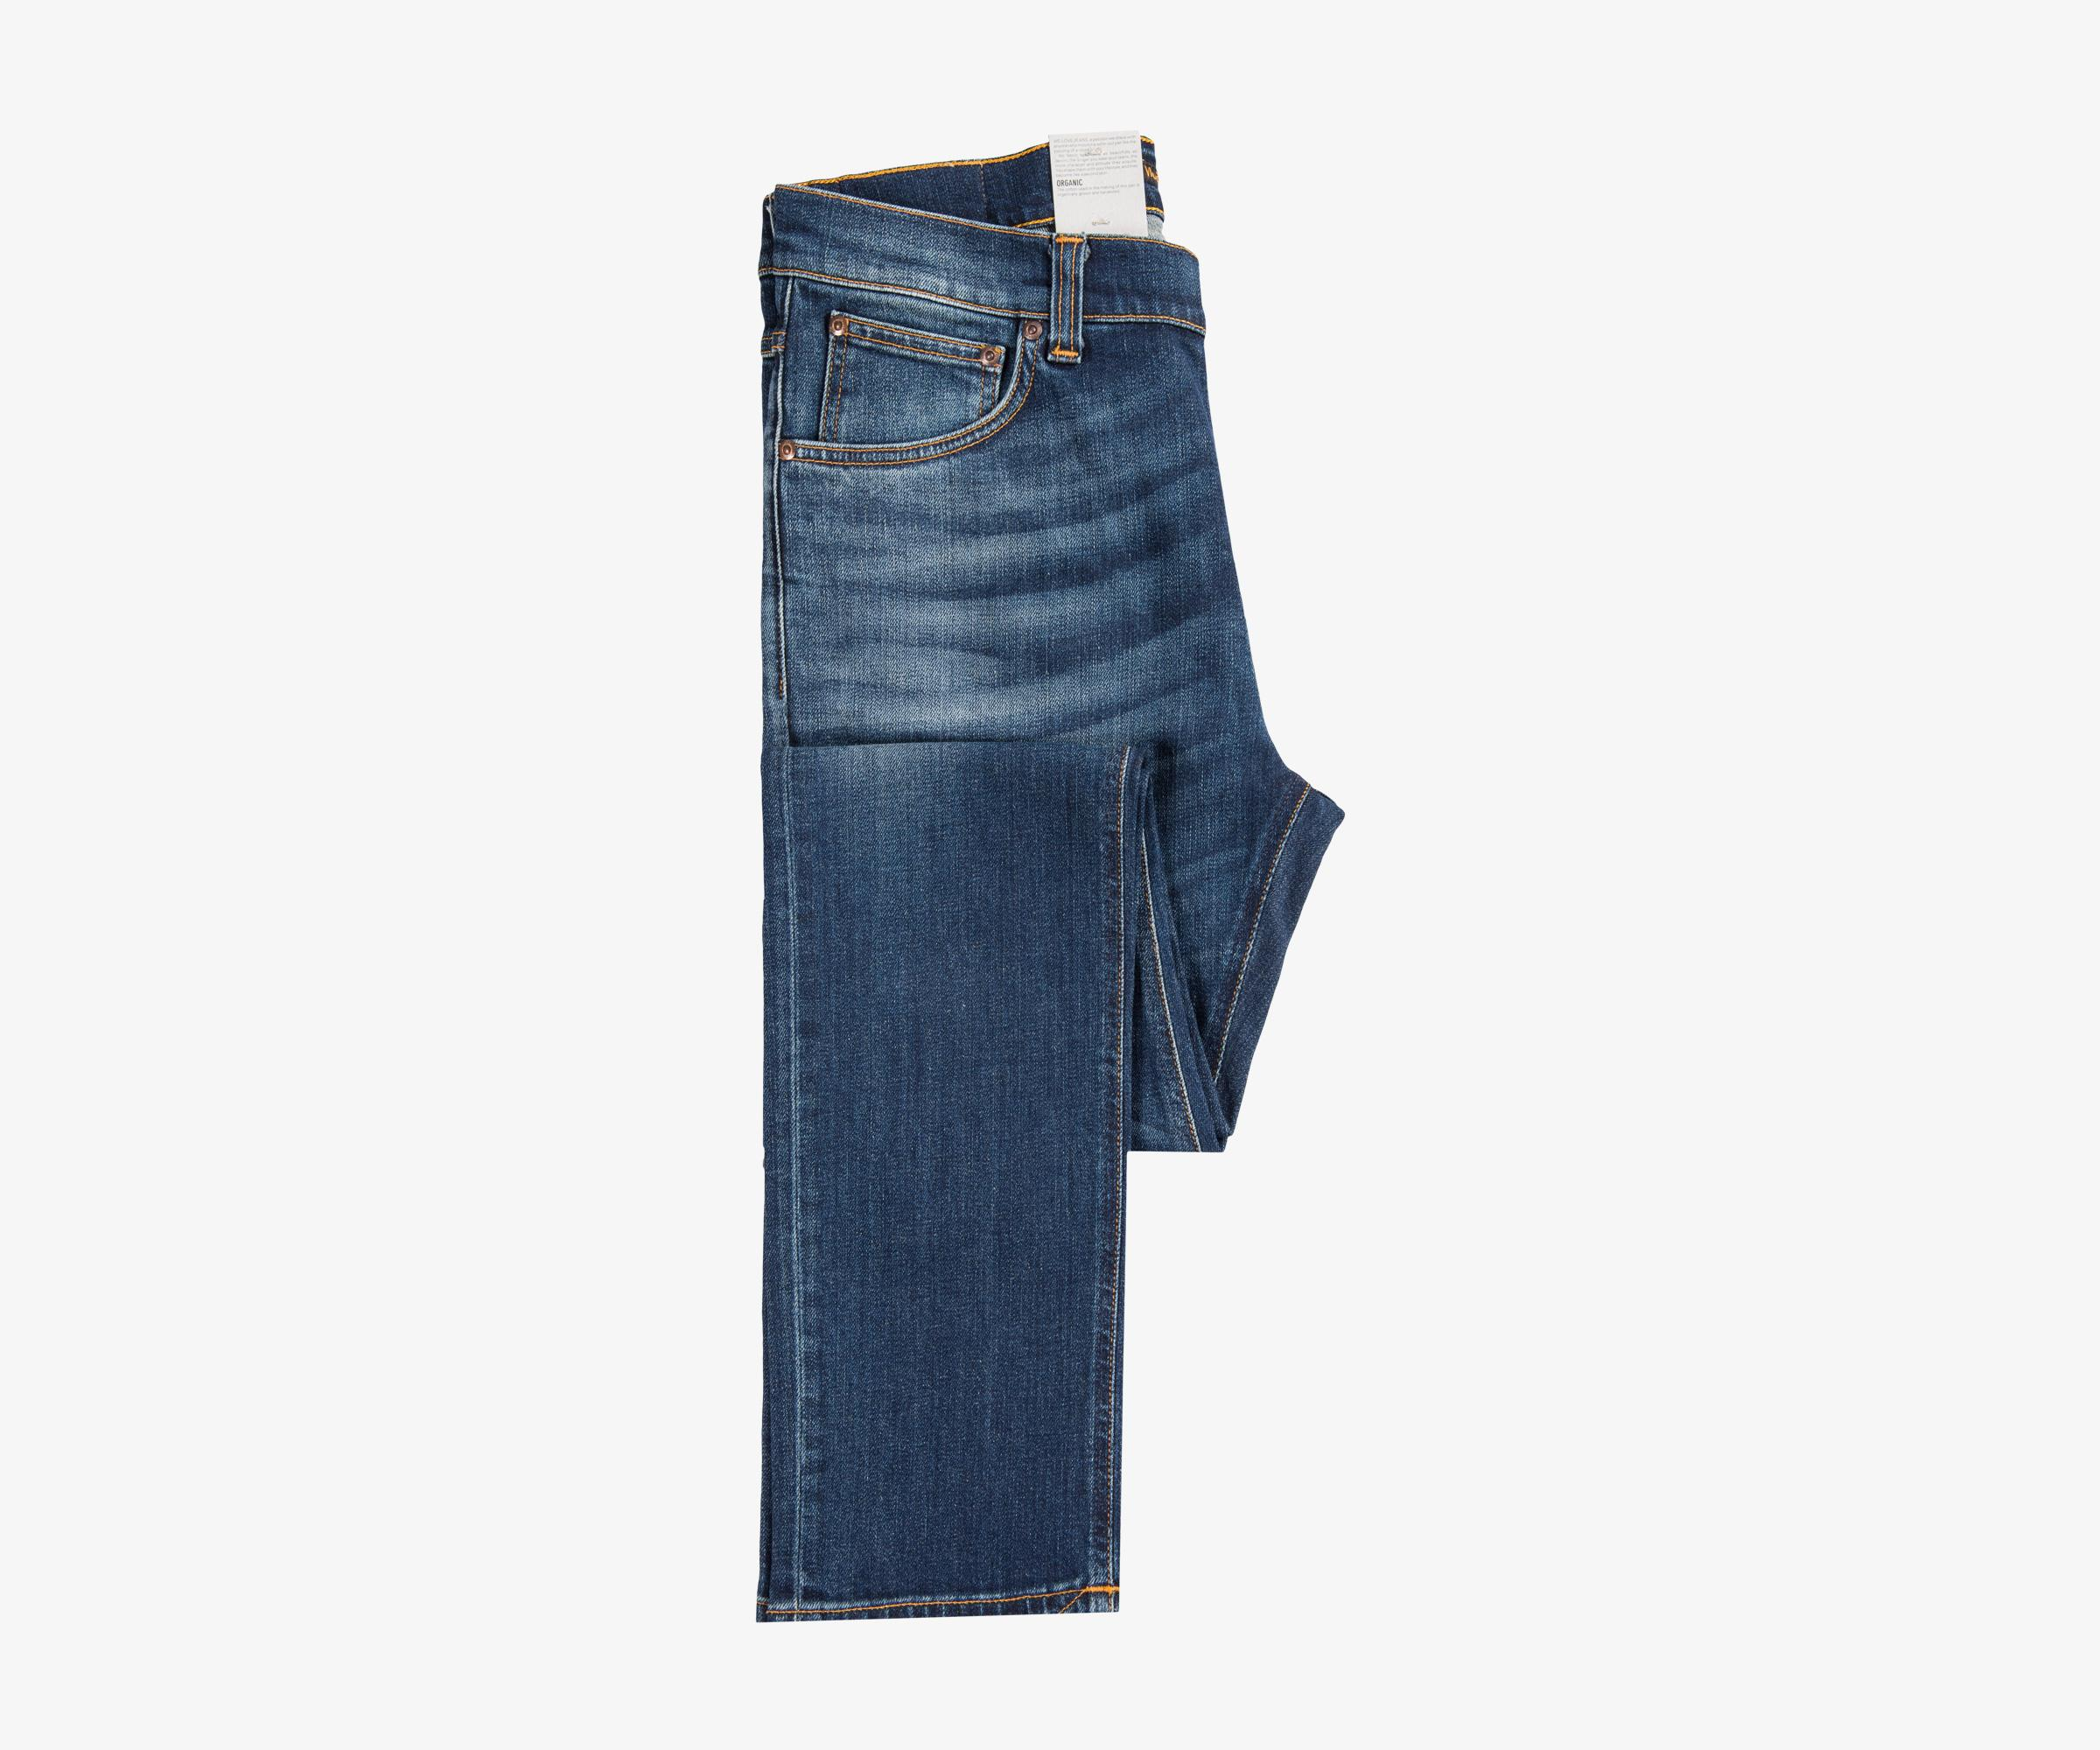 Nudie Jeans Denim Lean Dean Comfort Stretch Jean Crispy Bora in Blue for Men